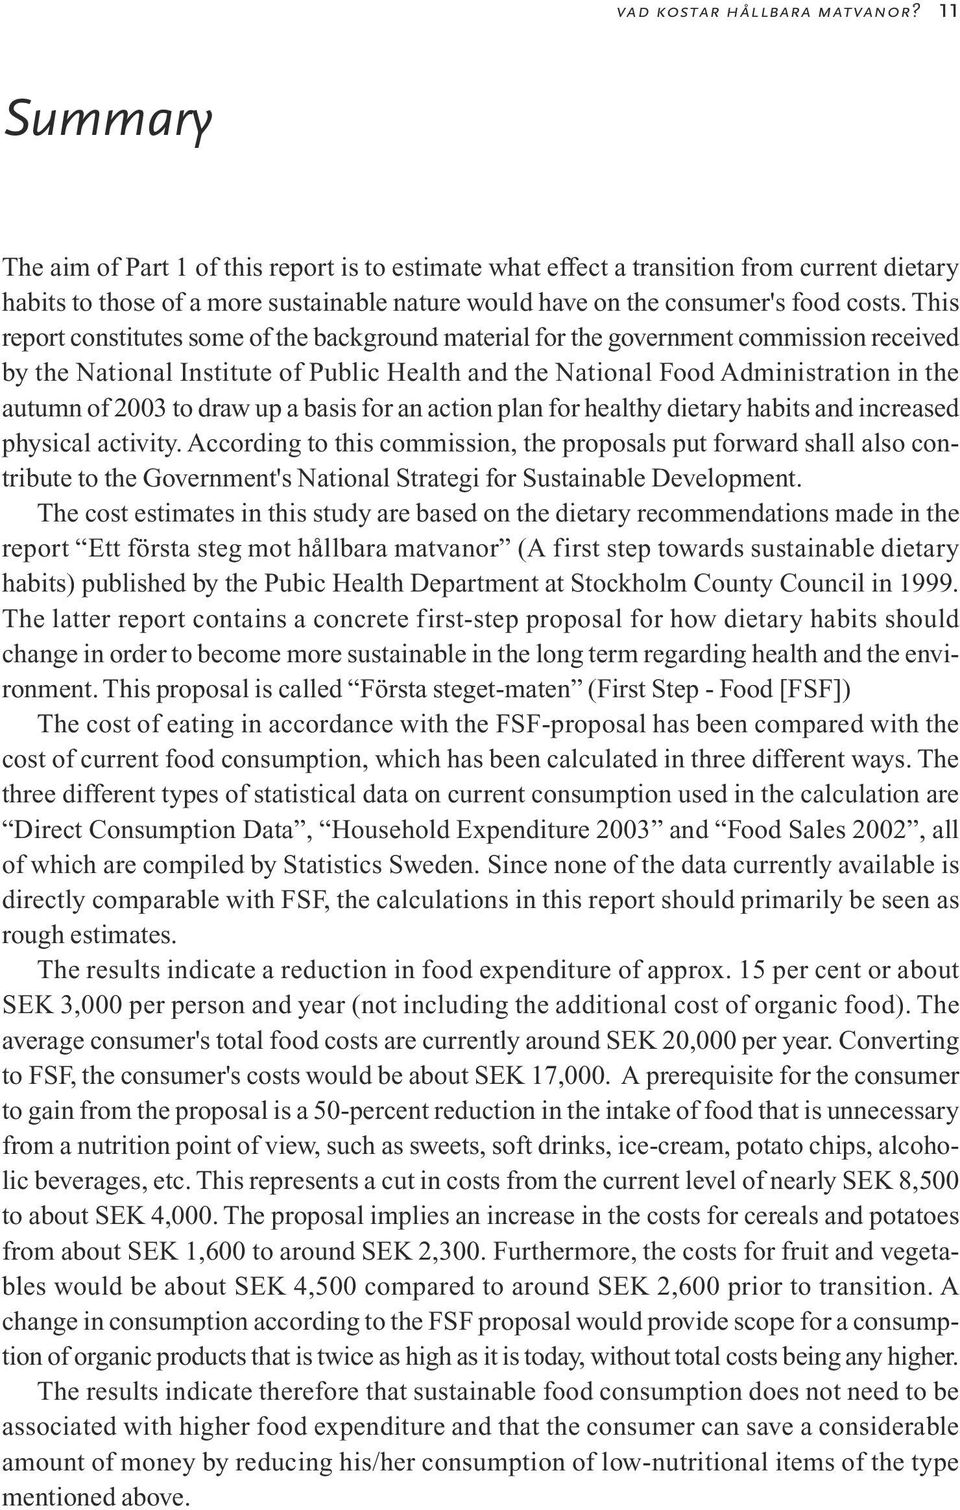 This report constitutes some of the background material for the government commission received by the National Institute of Public Health and the National Food Administration in the autumn of 2003 to